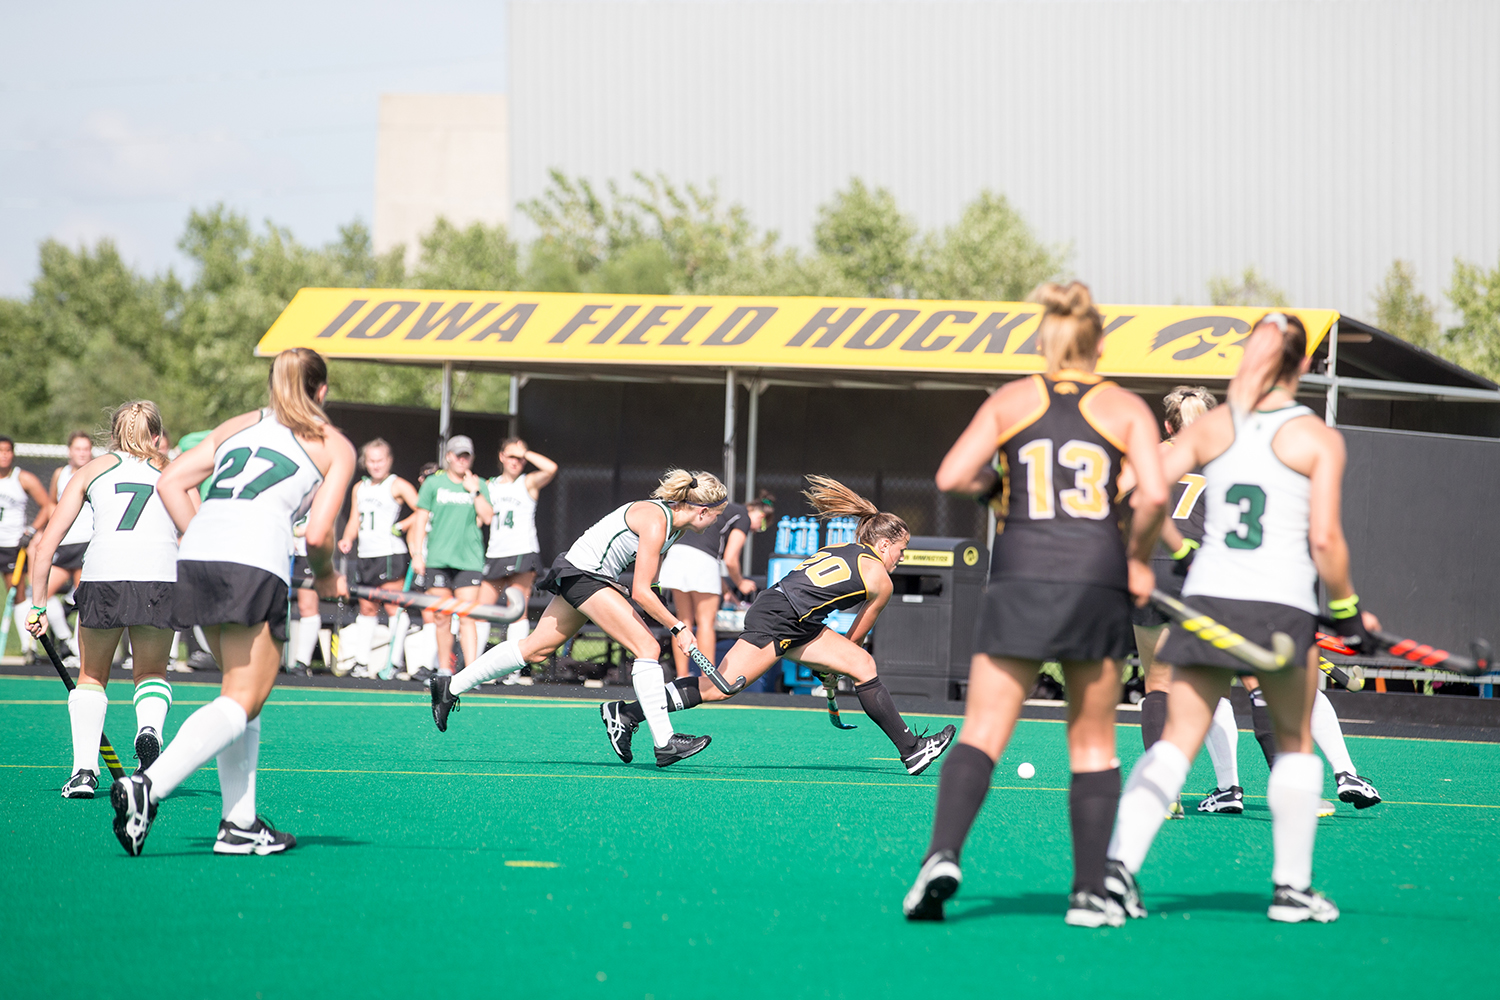 Iowa%27s+Sophie+Sunderland+controls+the+ball+during+a+field+hockey+match+between+Iowa+and+Dartmouth+College+at+Grant+Field+on+Friday%2C+August+31%2C+2018.+The+Hawkeyes+shut+out+the+Big+Green%2C+6-0.